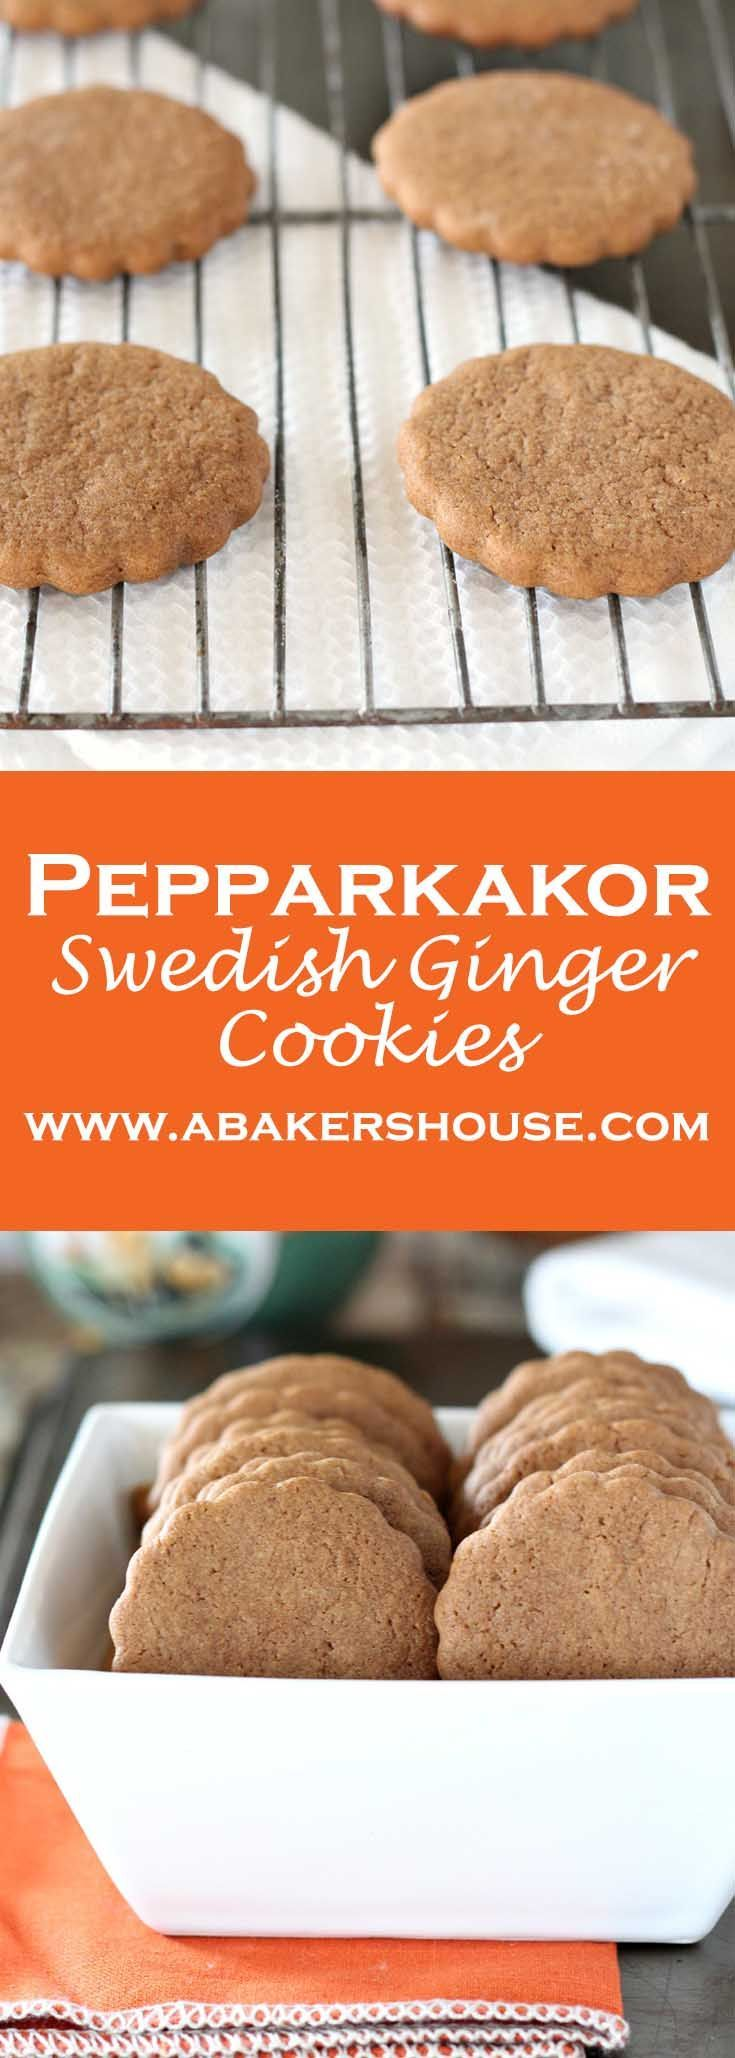 This Swedish ginger cookie is called Pepparkakor. It is perfect for a holiday Christmas cookie. These Swedish Ginger Cookies are delightfully easy. You might have come across this cookie in the children's book, Pippi Longstocking. Made by Holly Baker at www.abakershouse.com